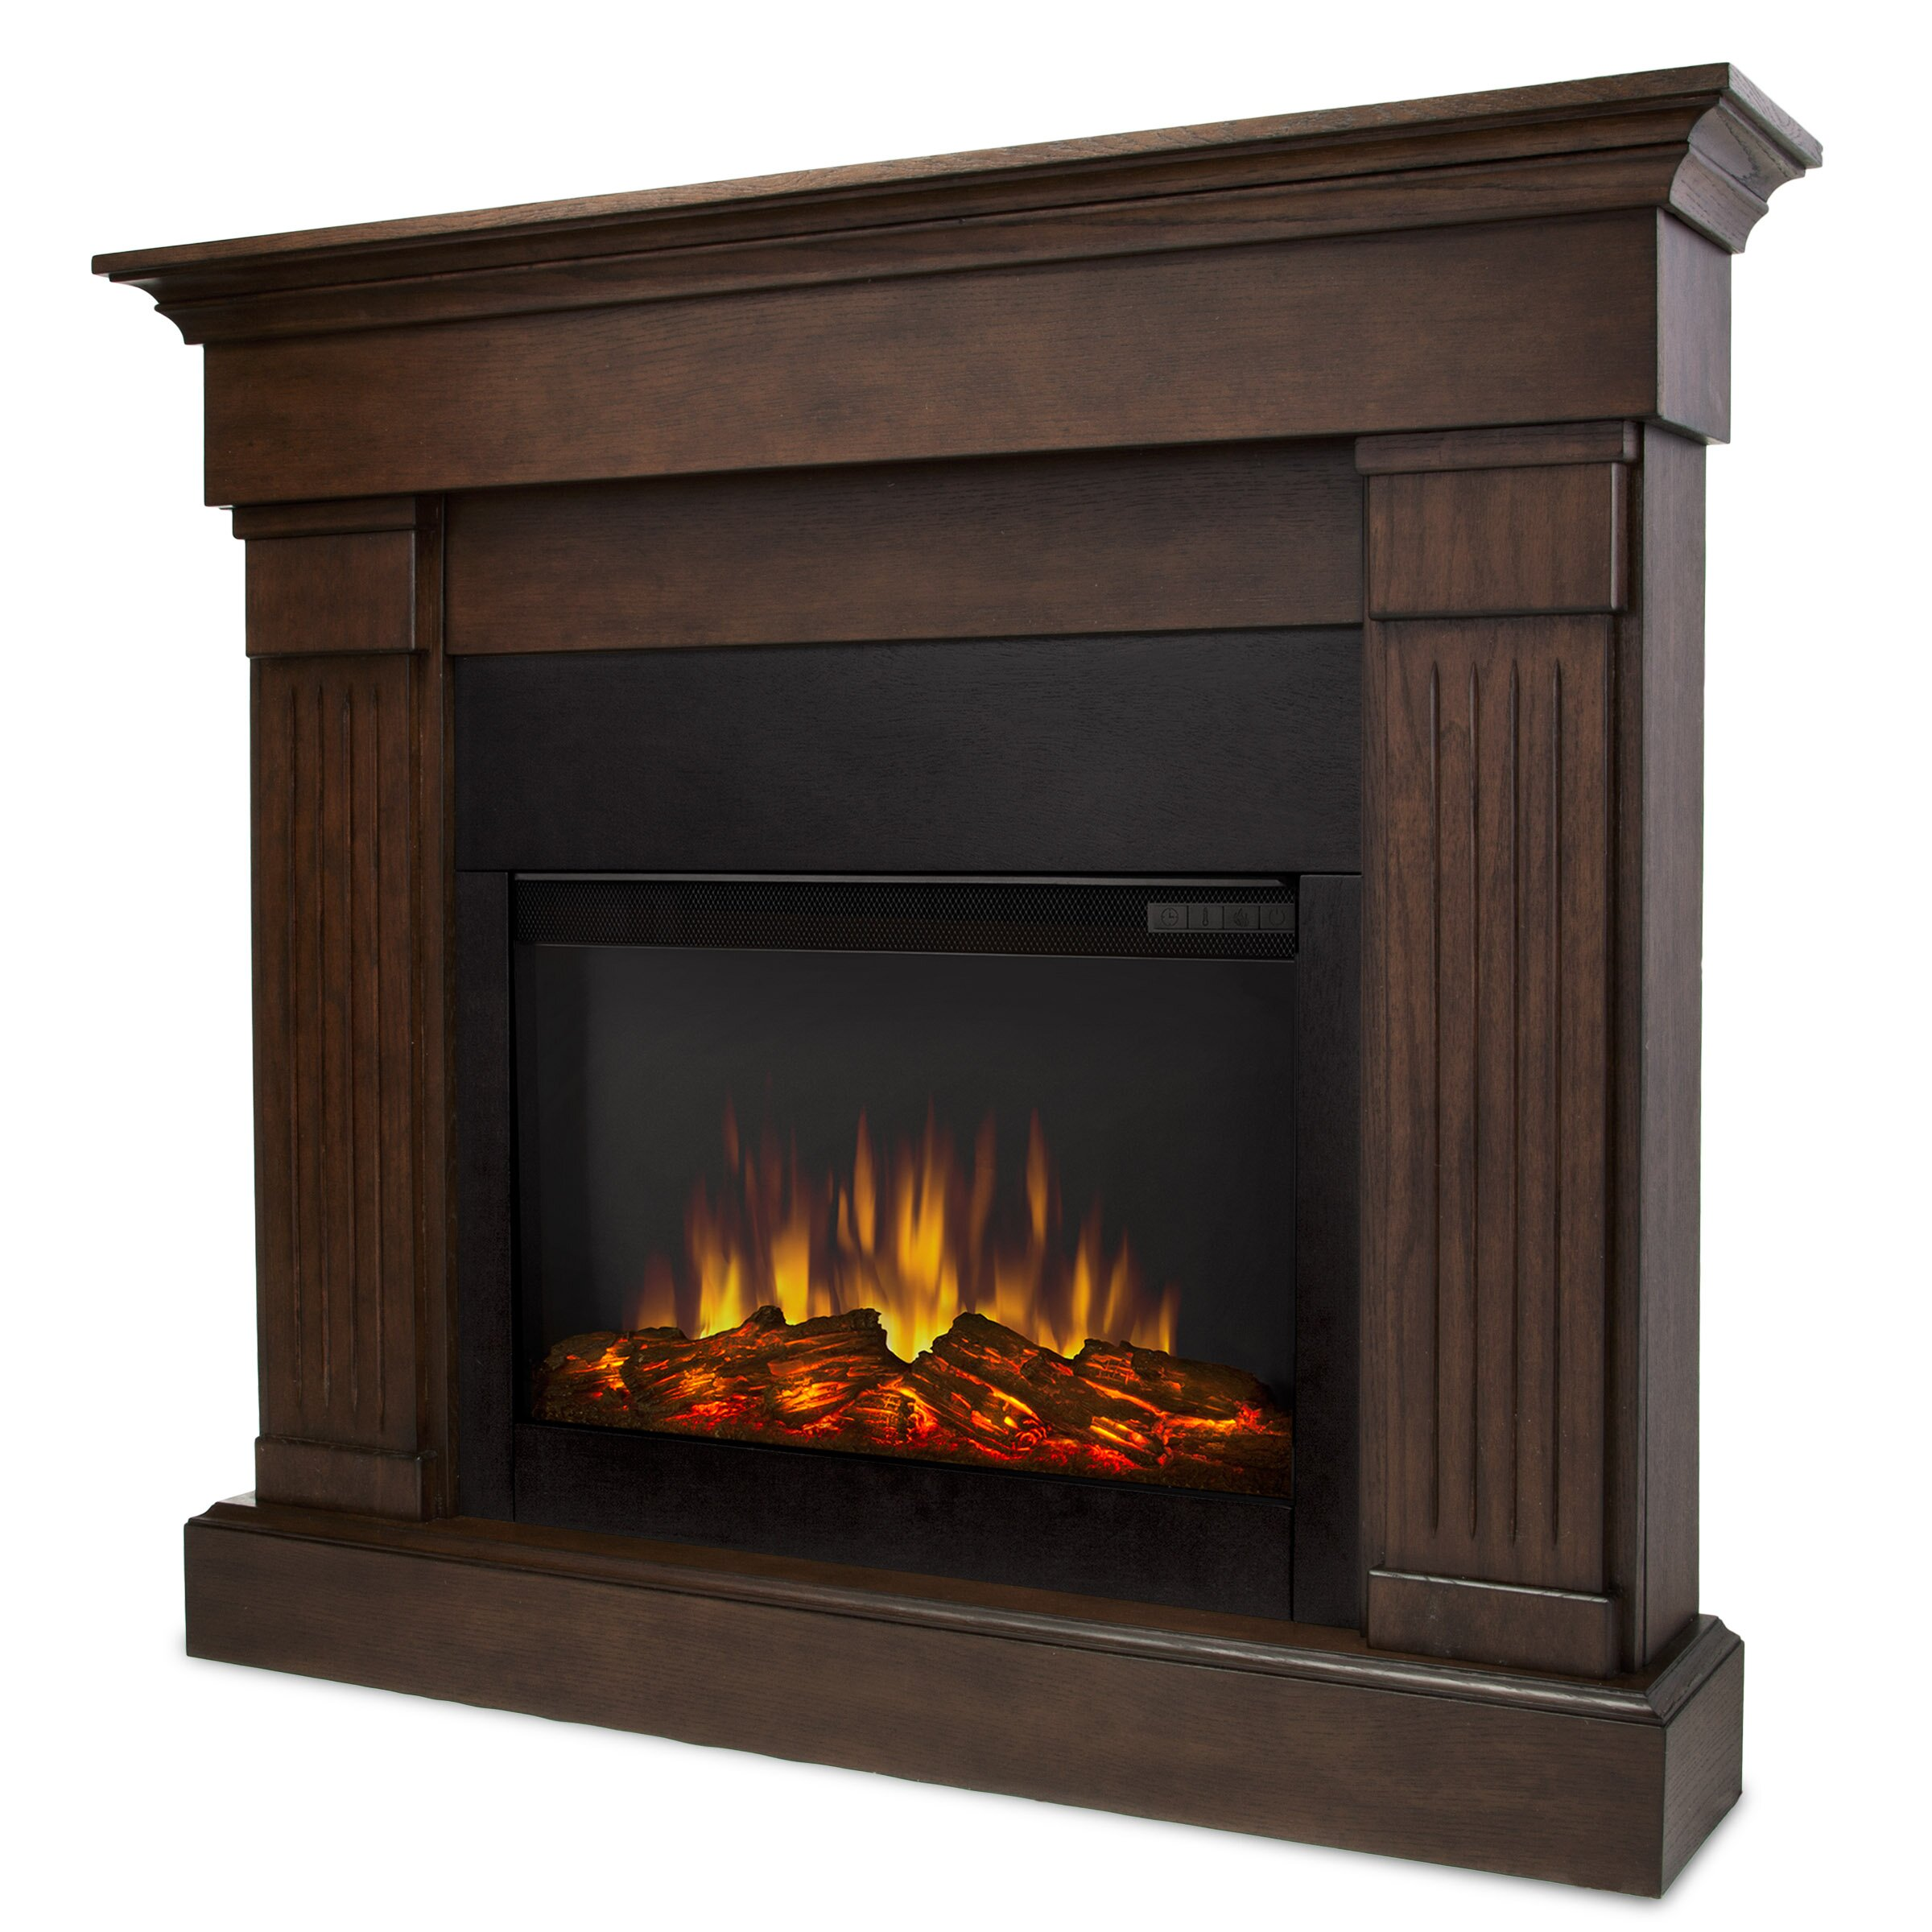 Real Flame Slim Crawford Wall Mounted Electric Fireplace Reviews Wayfair Supply